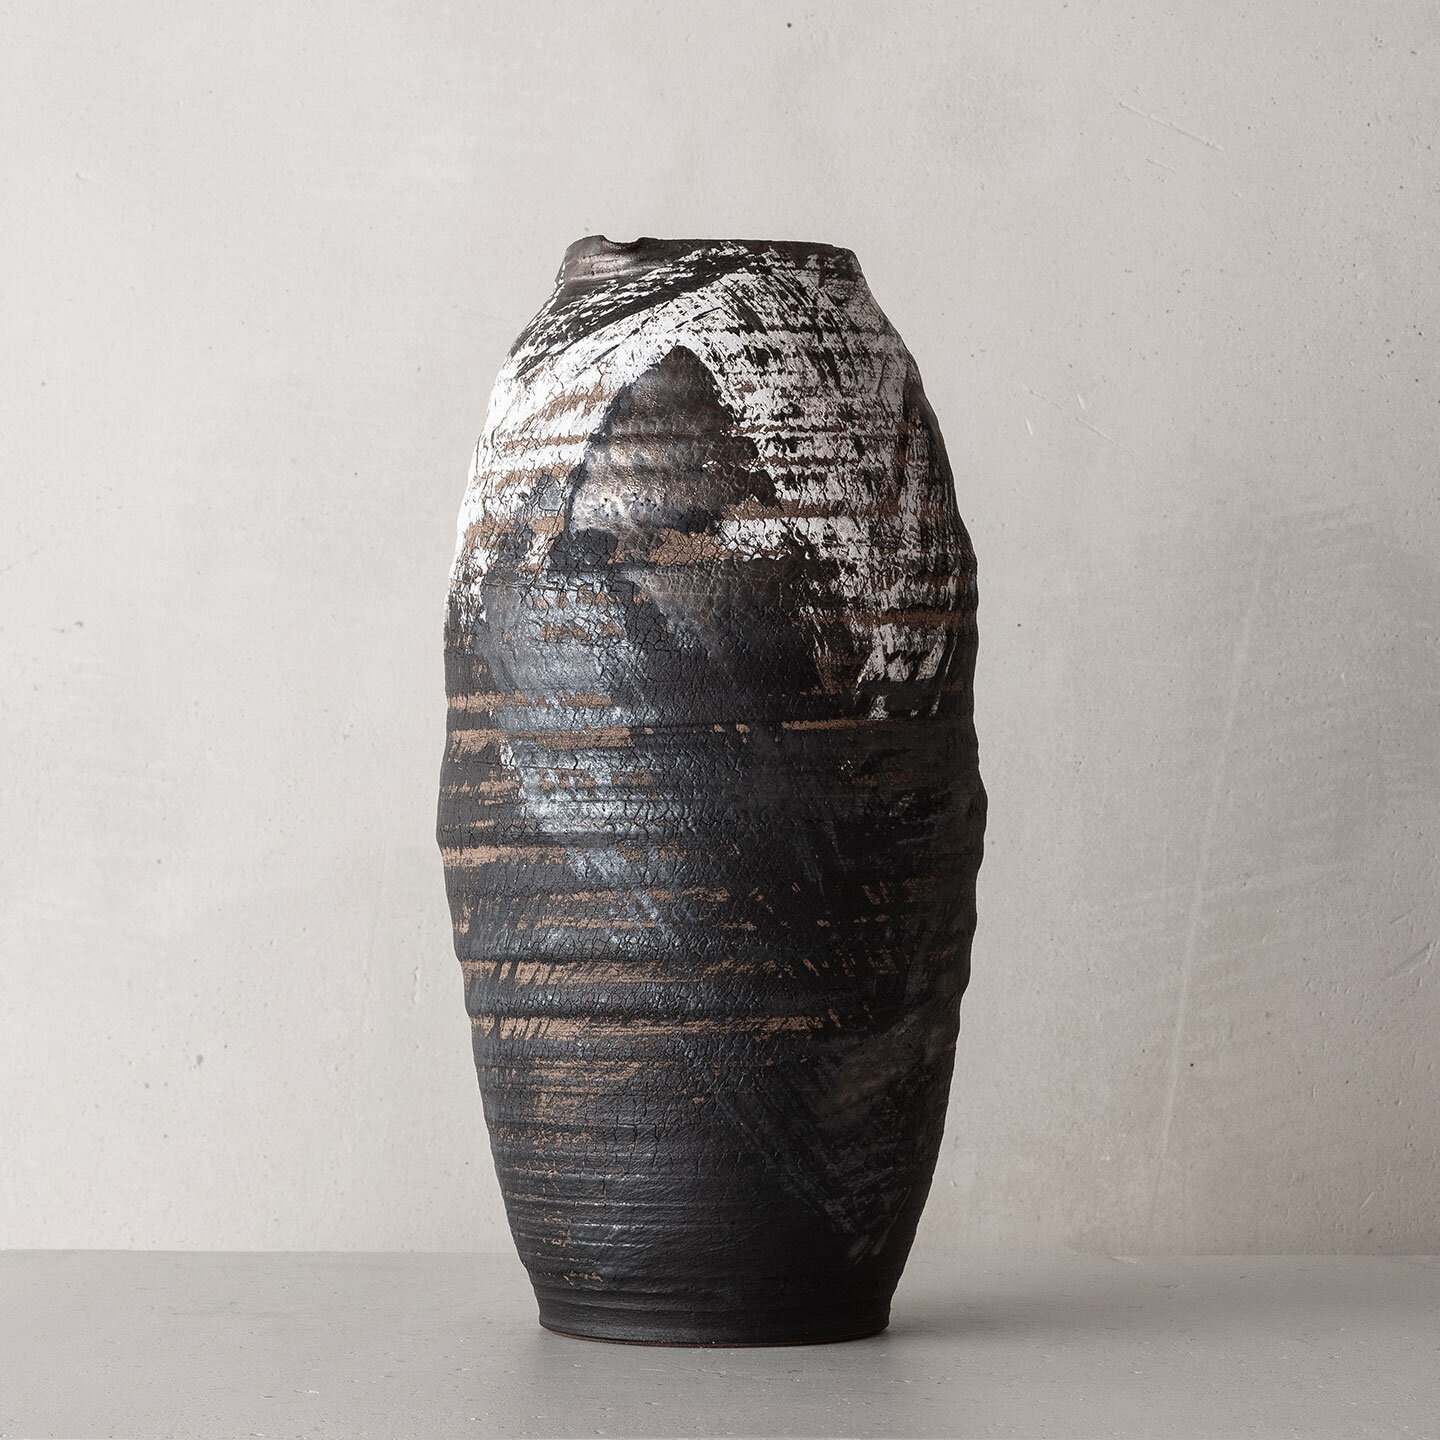 CHTHONIC VESSEL 45Peter Speliopoulos, Peter Speliopoulos Ceramics, Peter Speliopoulos Artist, Peter Speliopoulos Fashion Designer, Contemporary Ceramics, Contemporary Greek Ceramics, Interior Design Accessories.